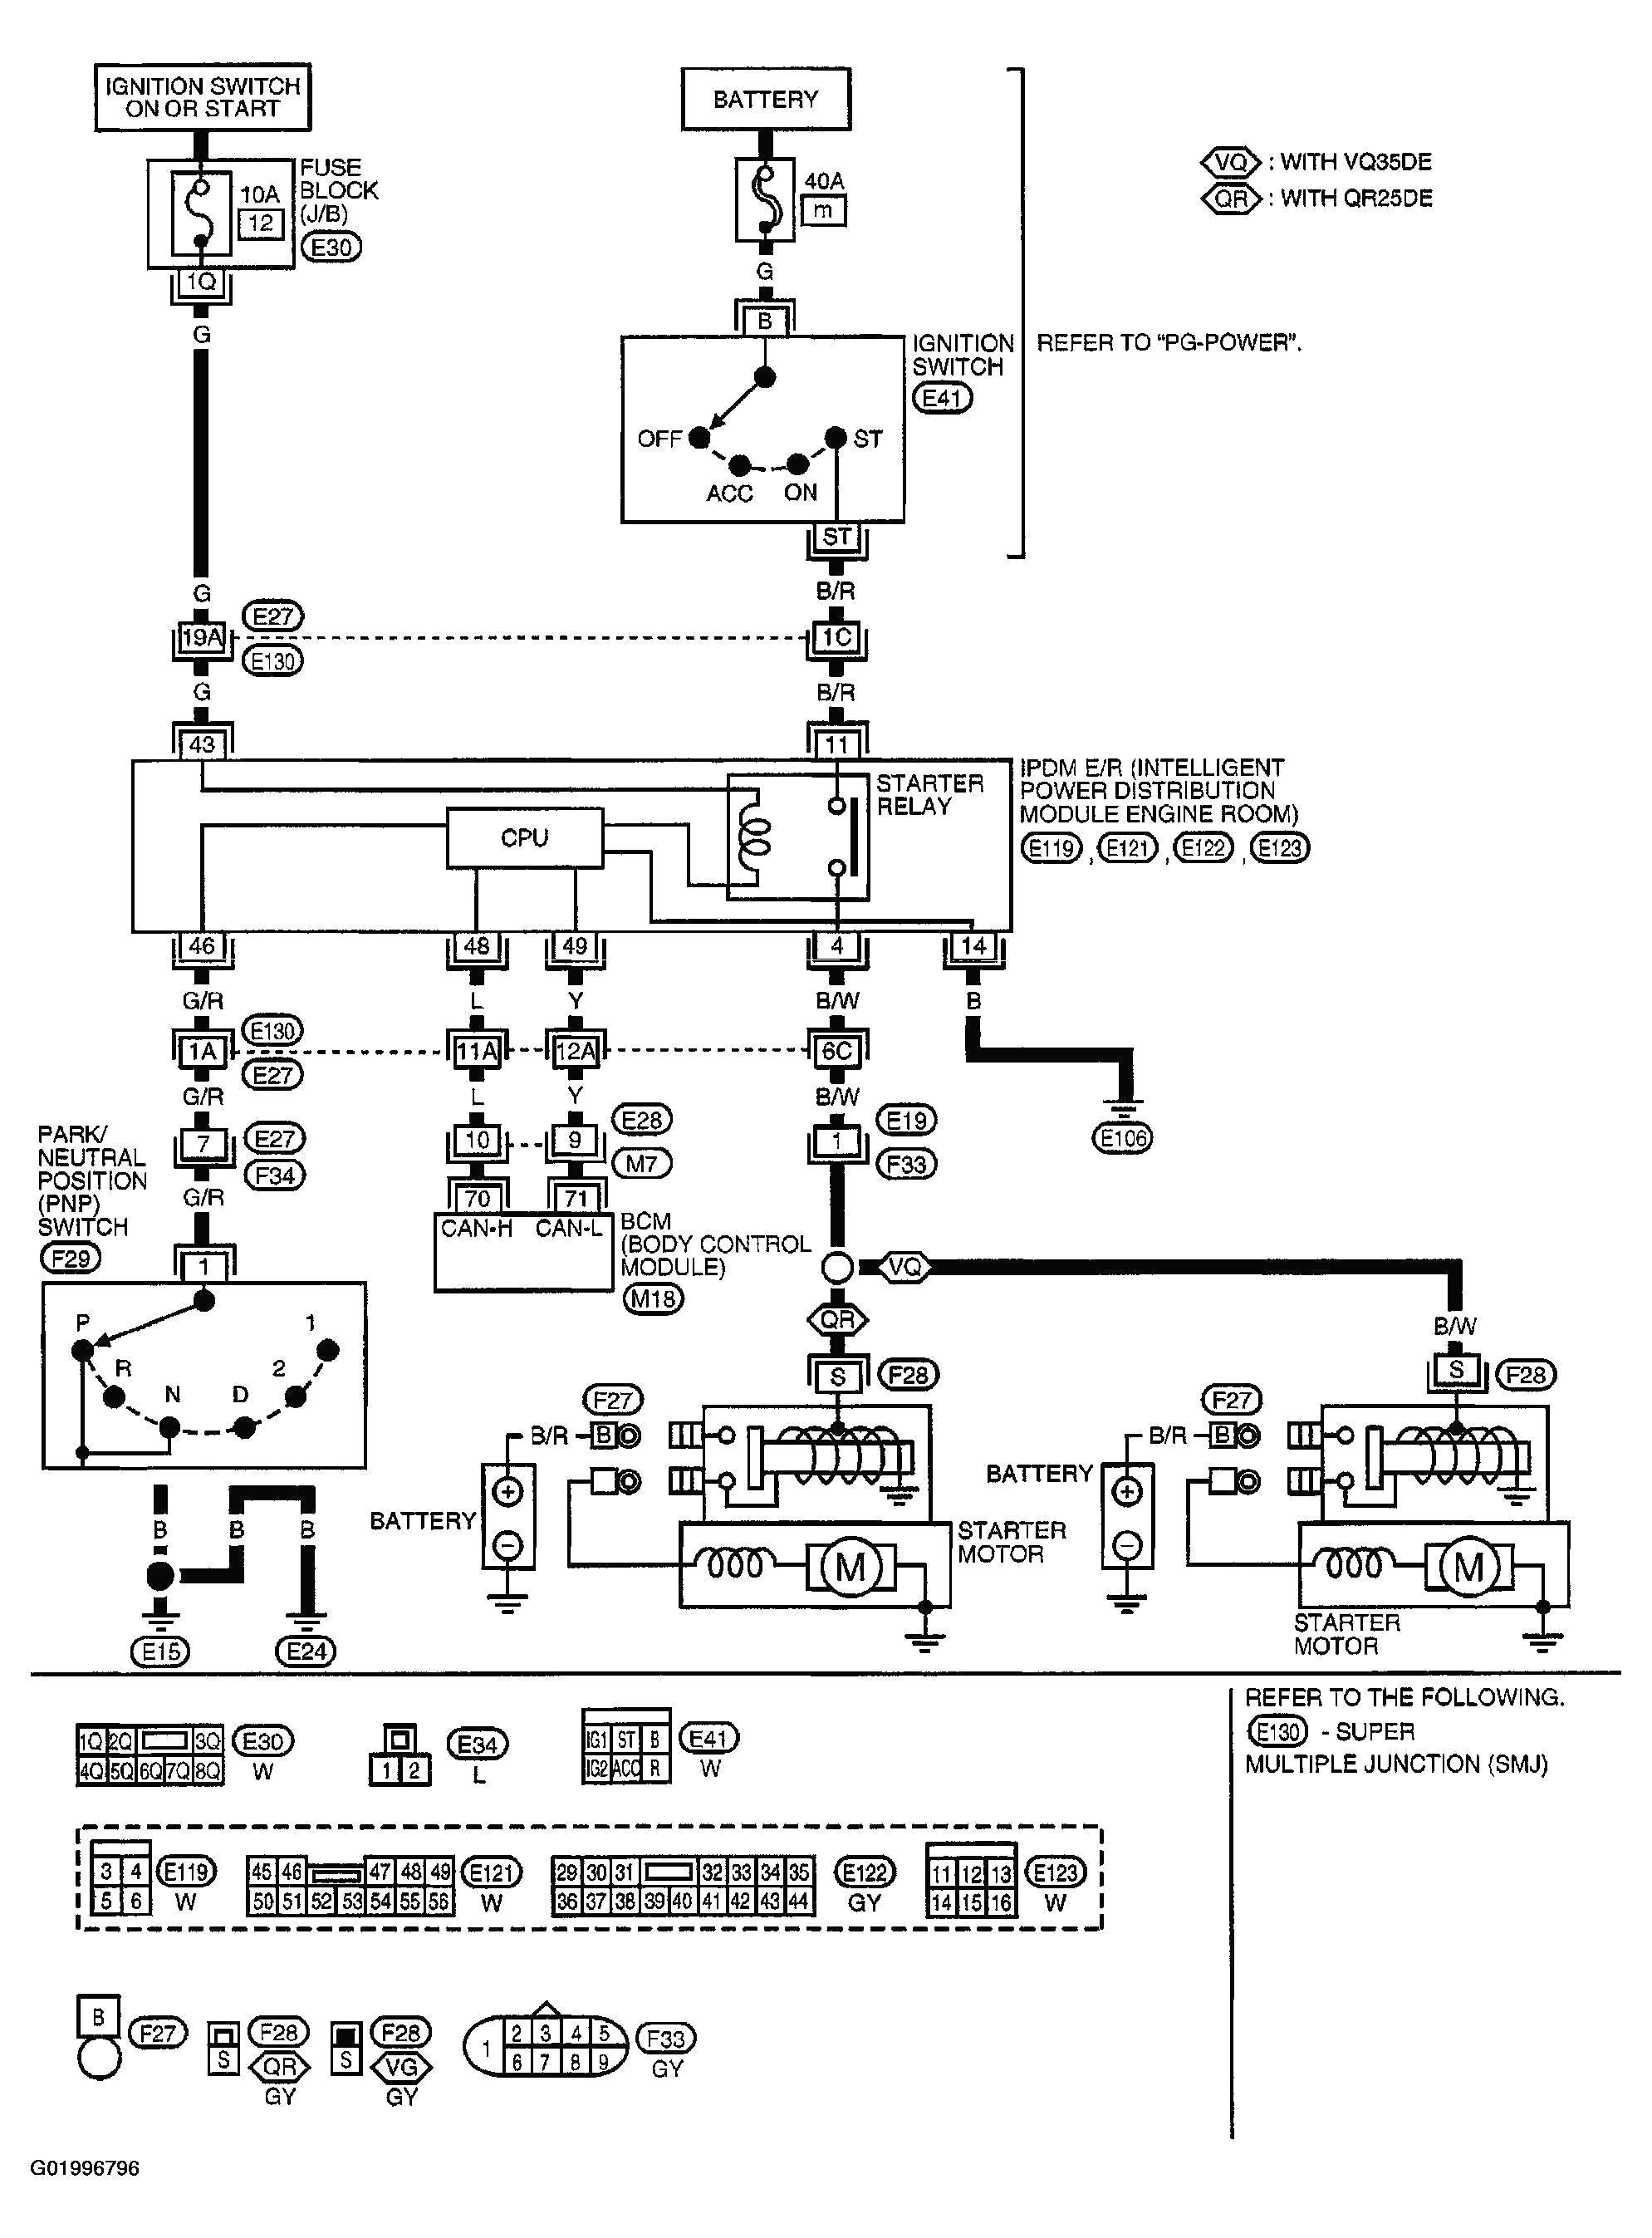 2014 Toyotum Highlander Fuse Diagram